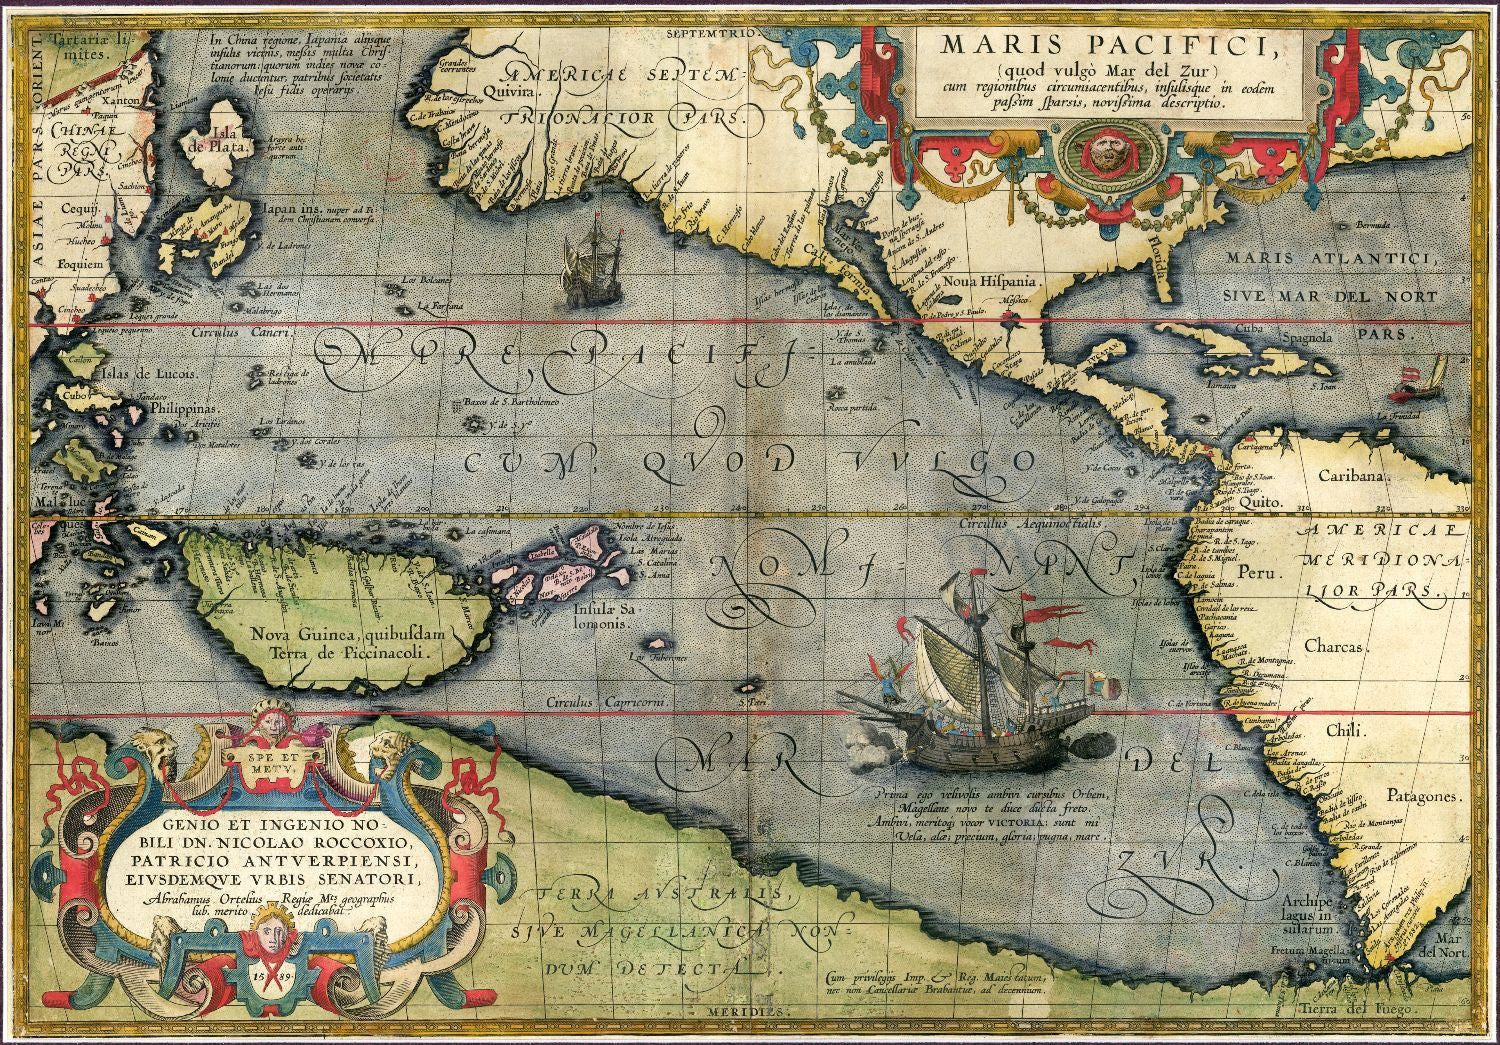 Decorative vintage world map maris pacifici abraham ortelius decorative vintage world map maris pacifici abraham ortelius 1589 canvas prints gumiabroncs